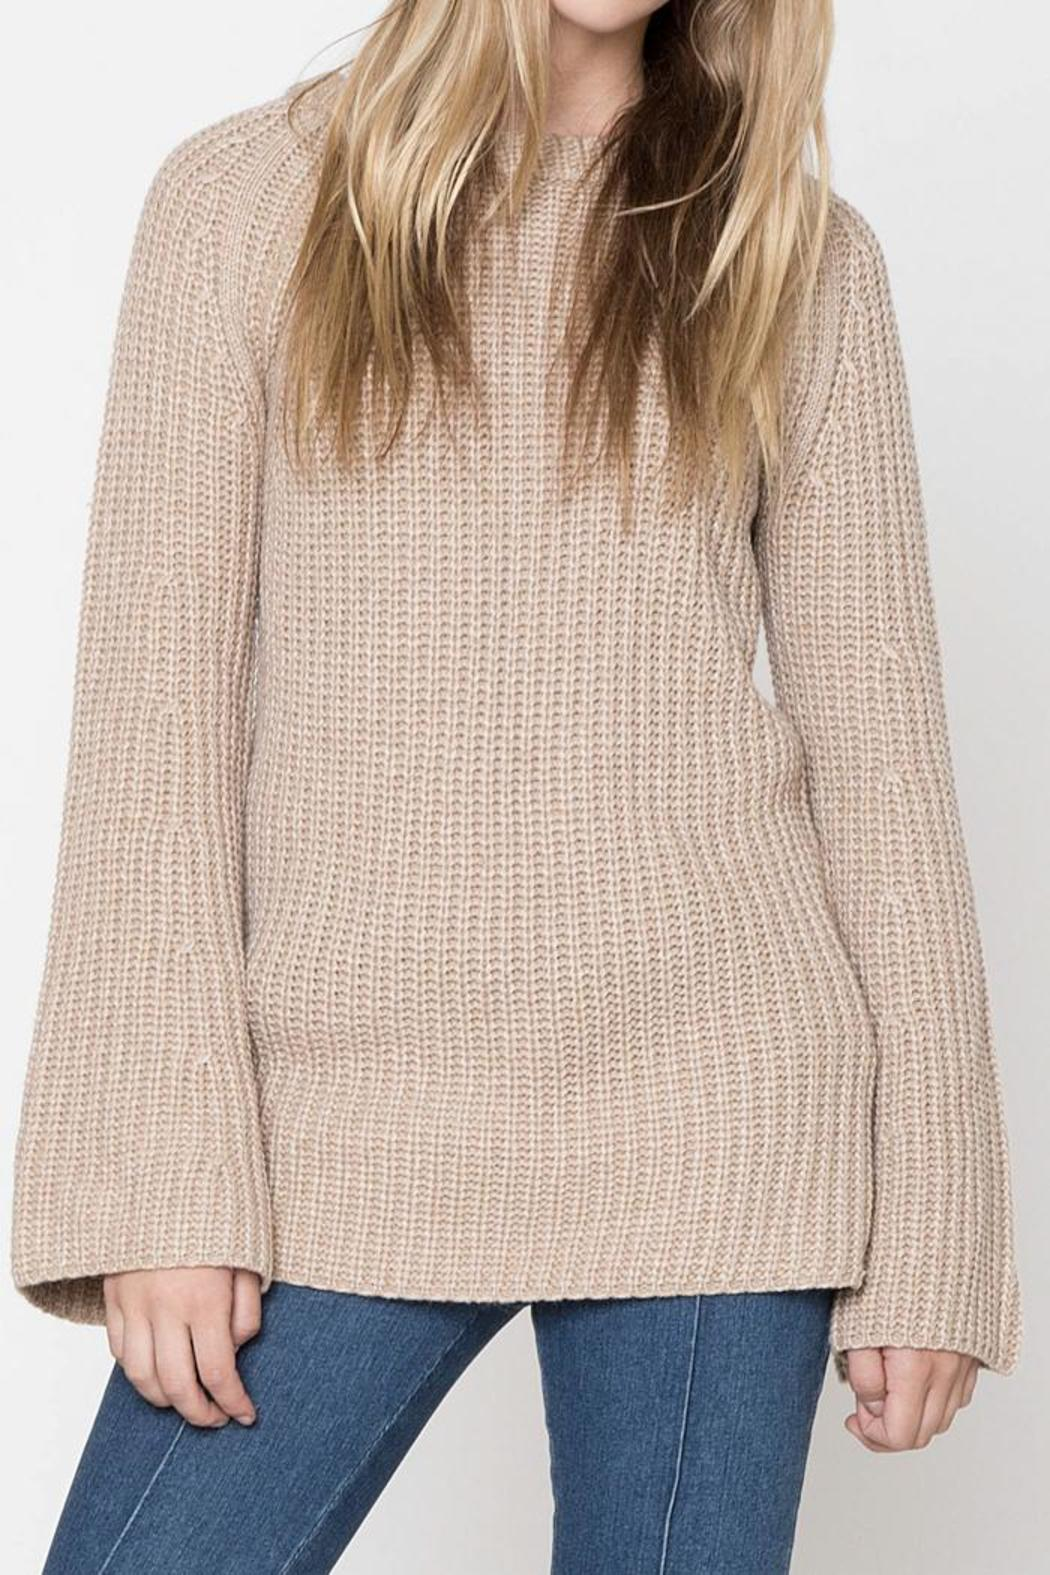 3e2d490dba14c2 Movint Bell-Sleeve Pullover Sweater from California by Mo Vint ...